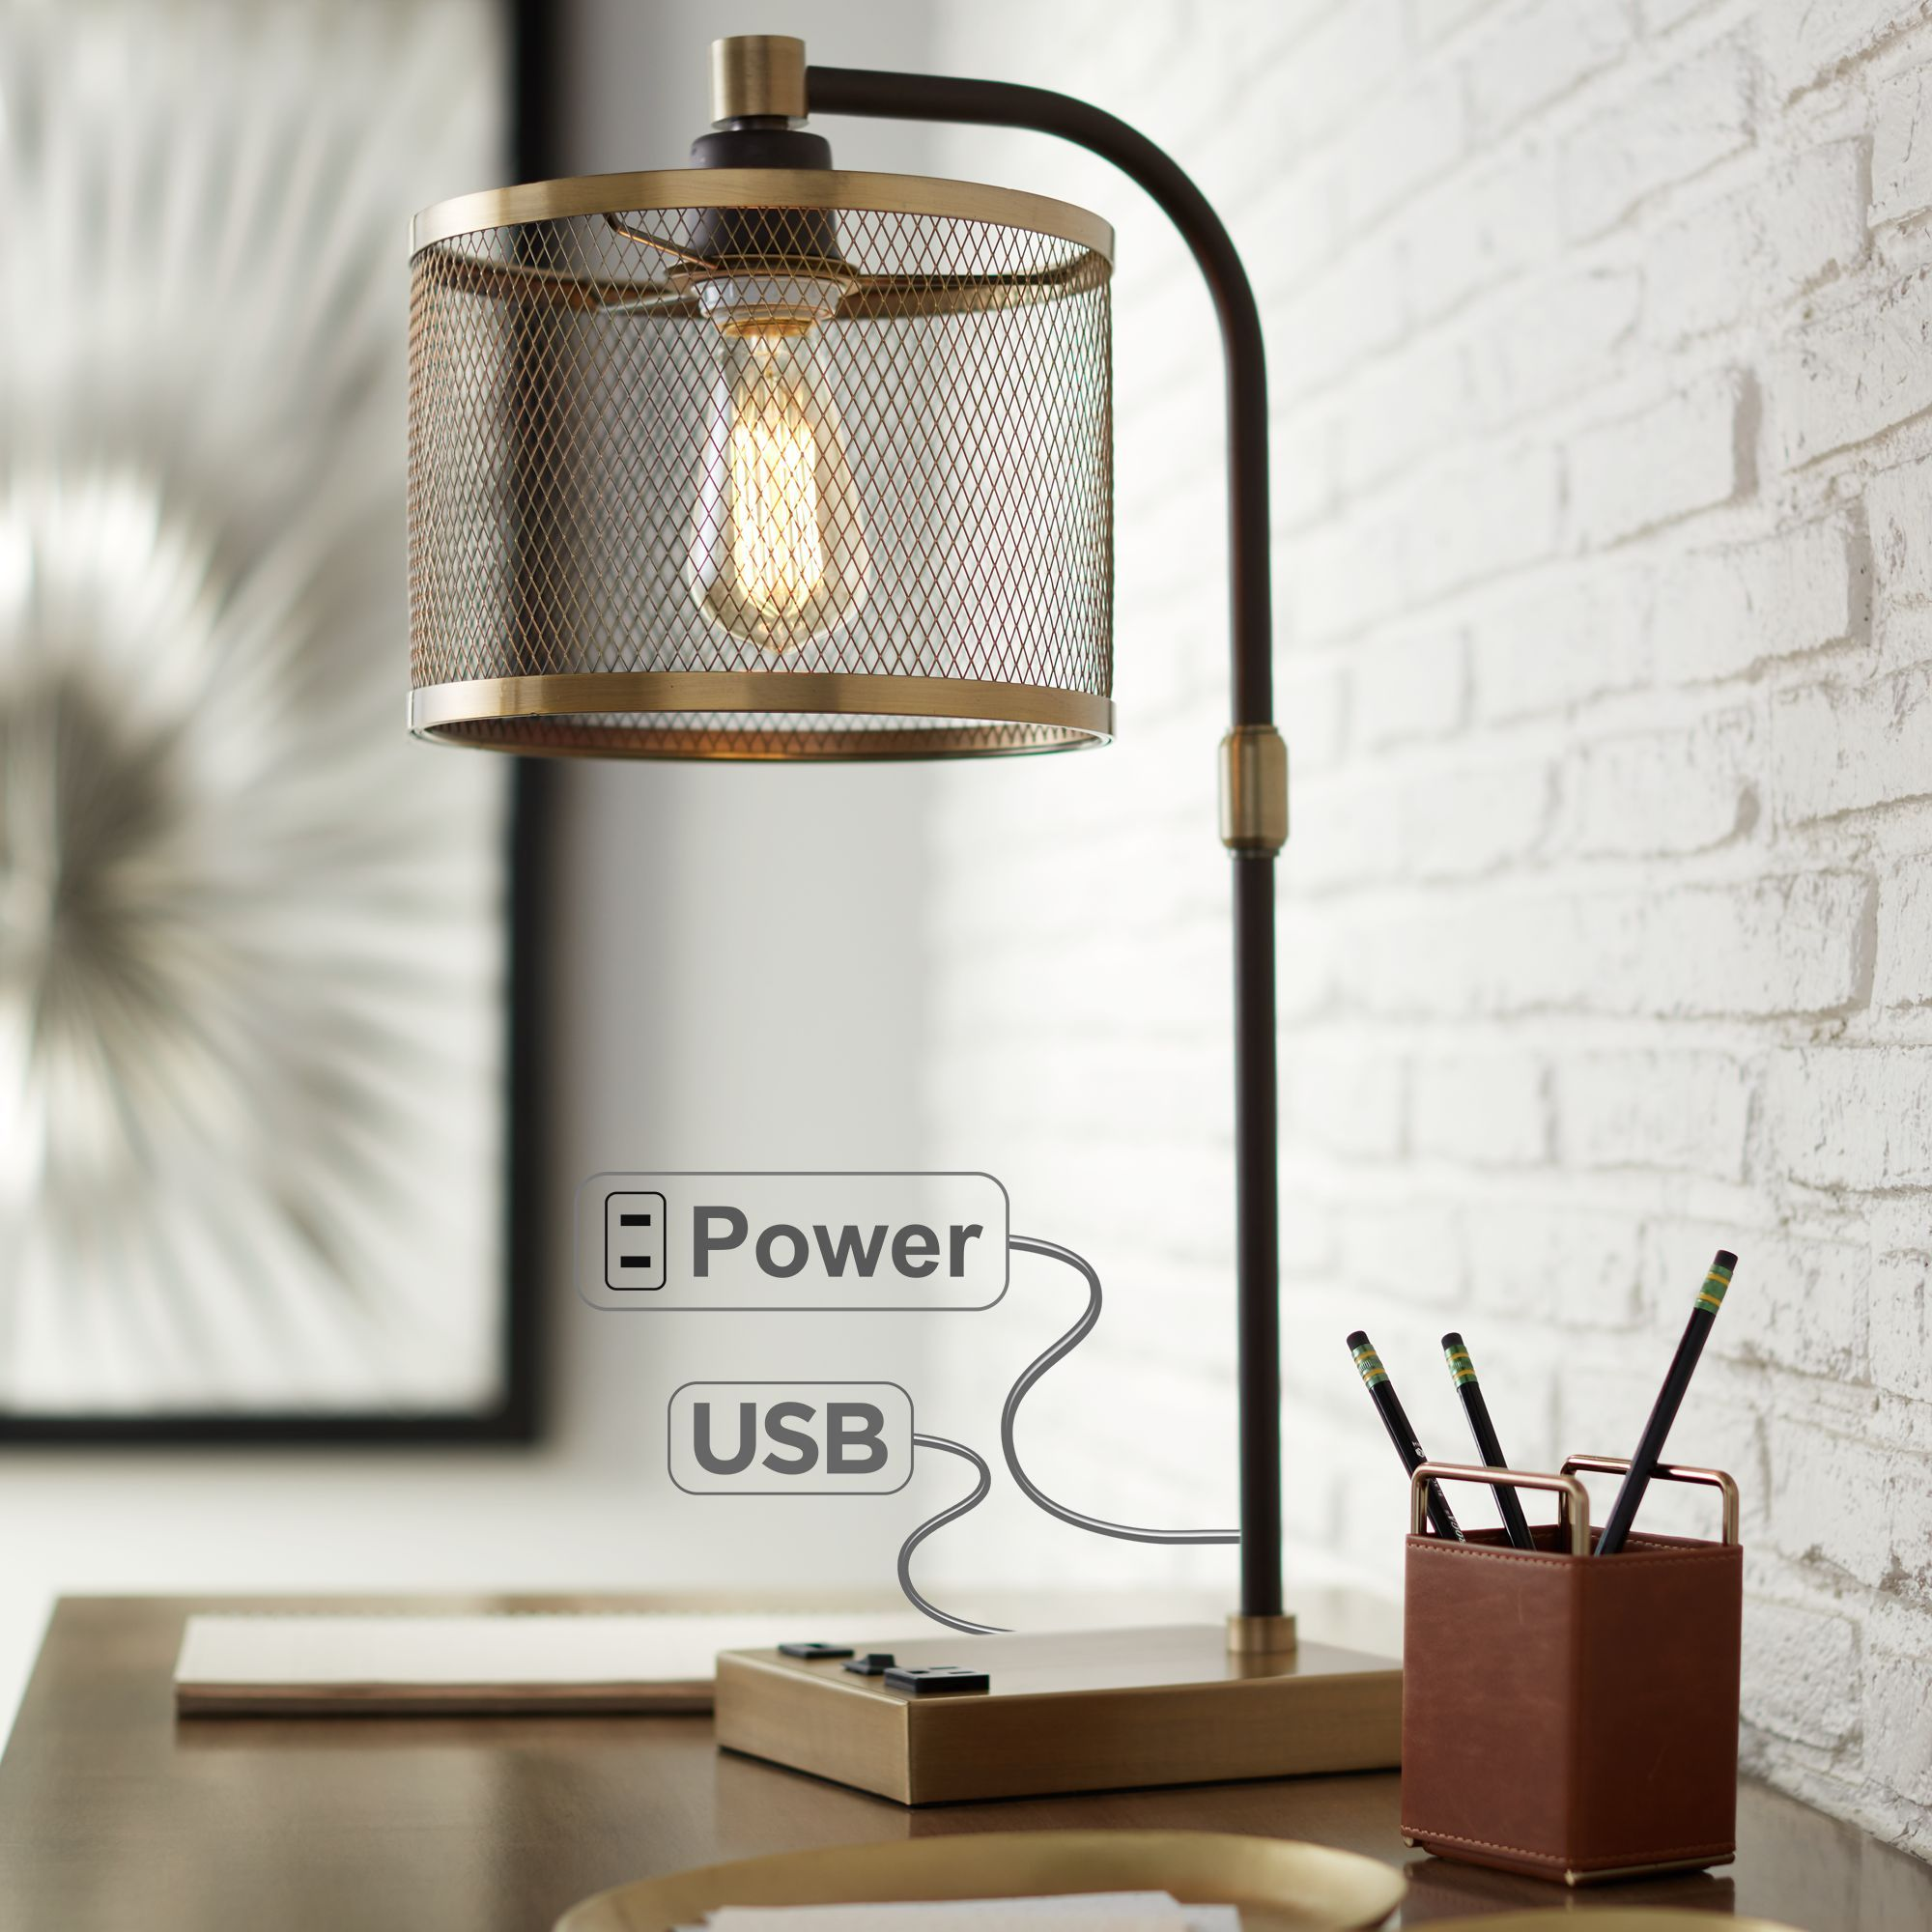 360 Lighting Industrial Desk Lamp with USB and AC Power